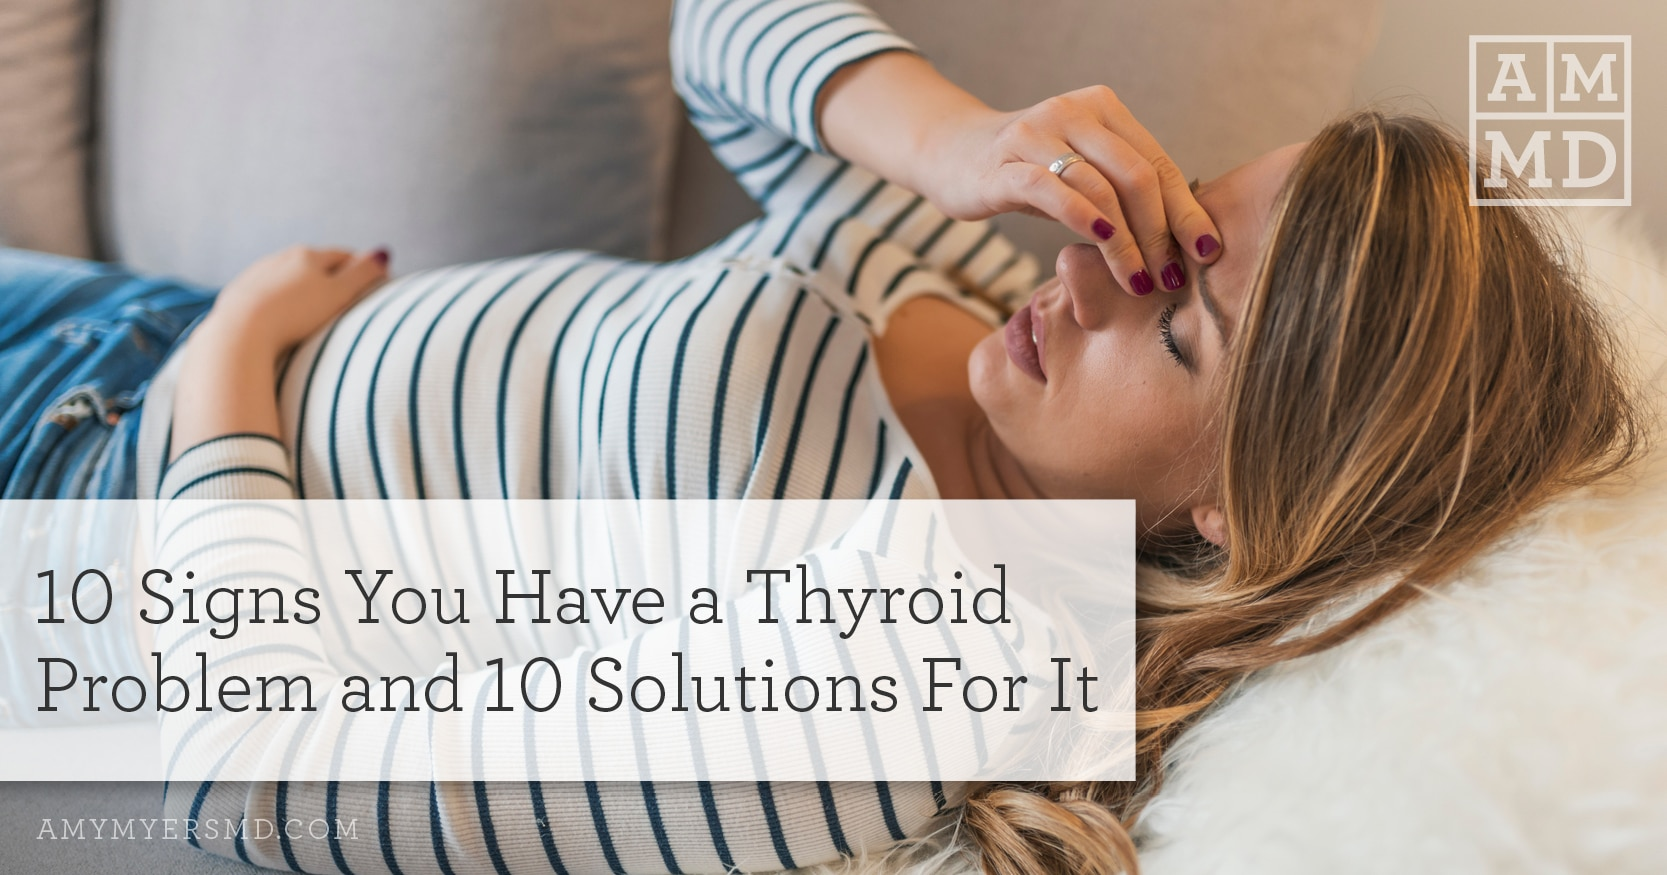 10 Signs of Thyroid Problems And 10 Solutions For Them - Woman in pain - Featured Image - Amy Myers MD